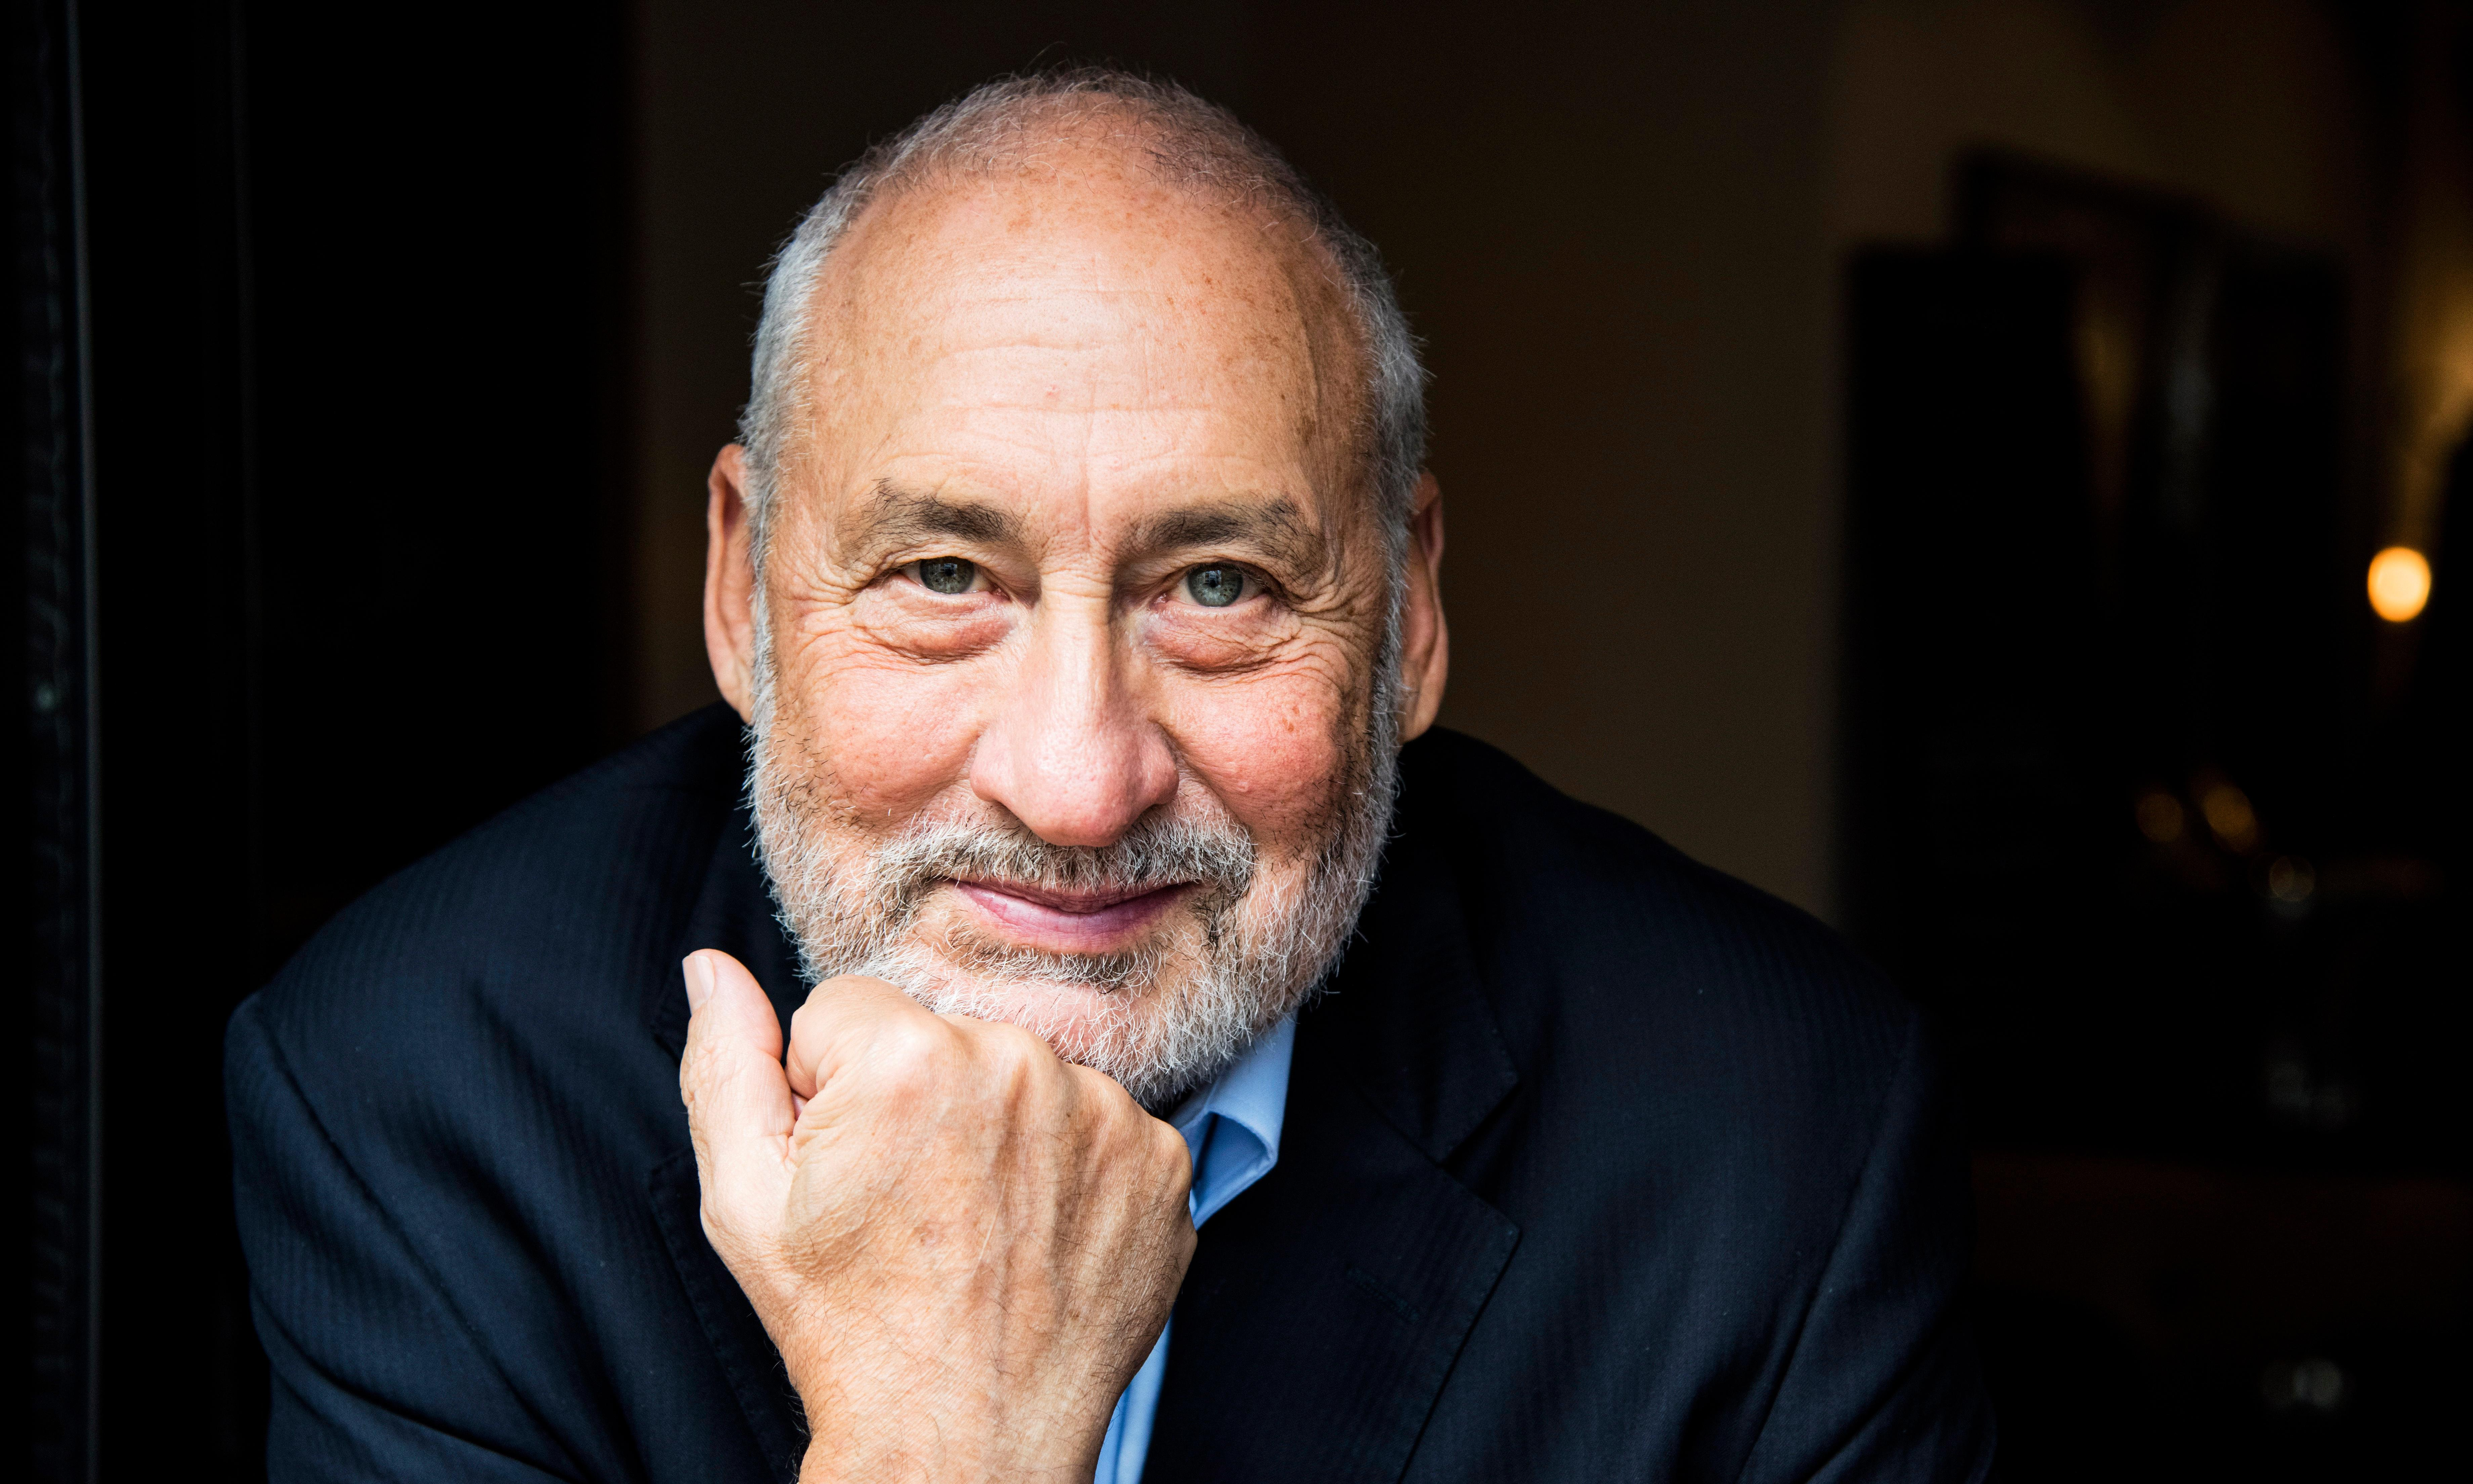 Joseph Stiglitz on artificial intelligence: 'We're going towards a more divided society'